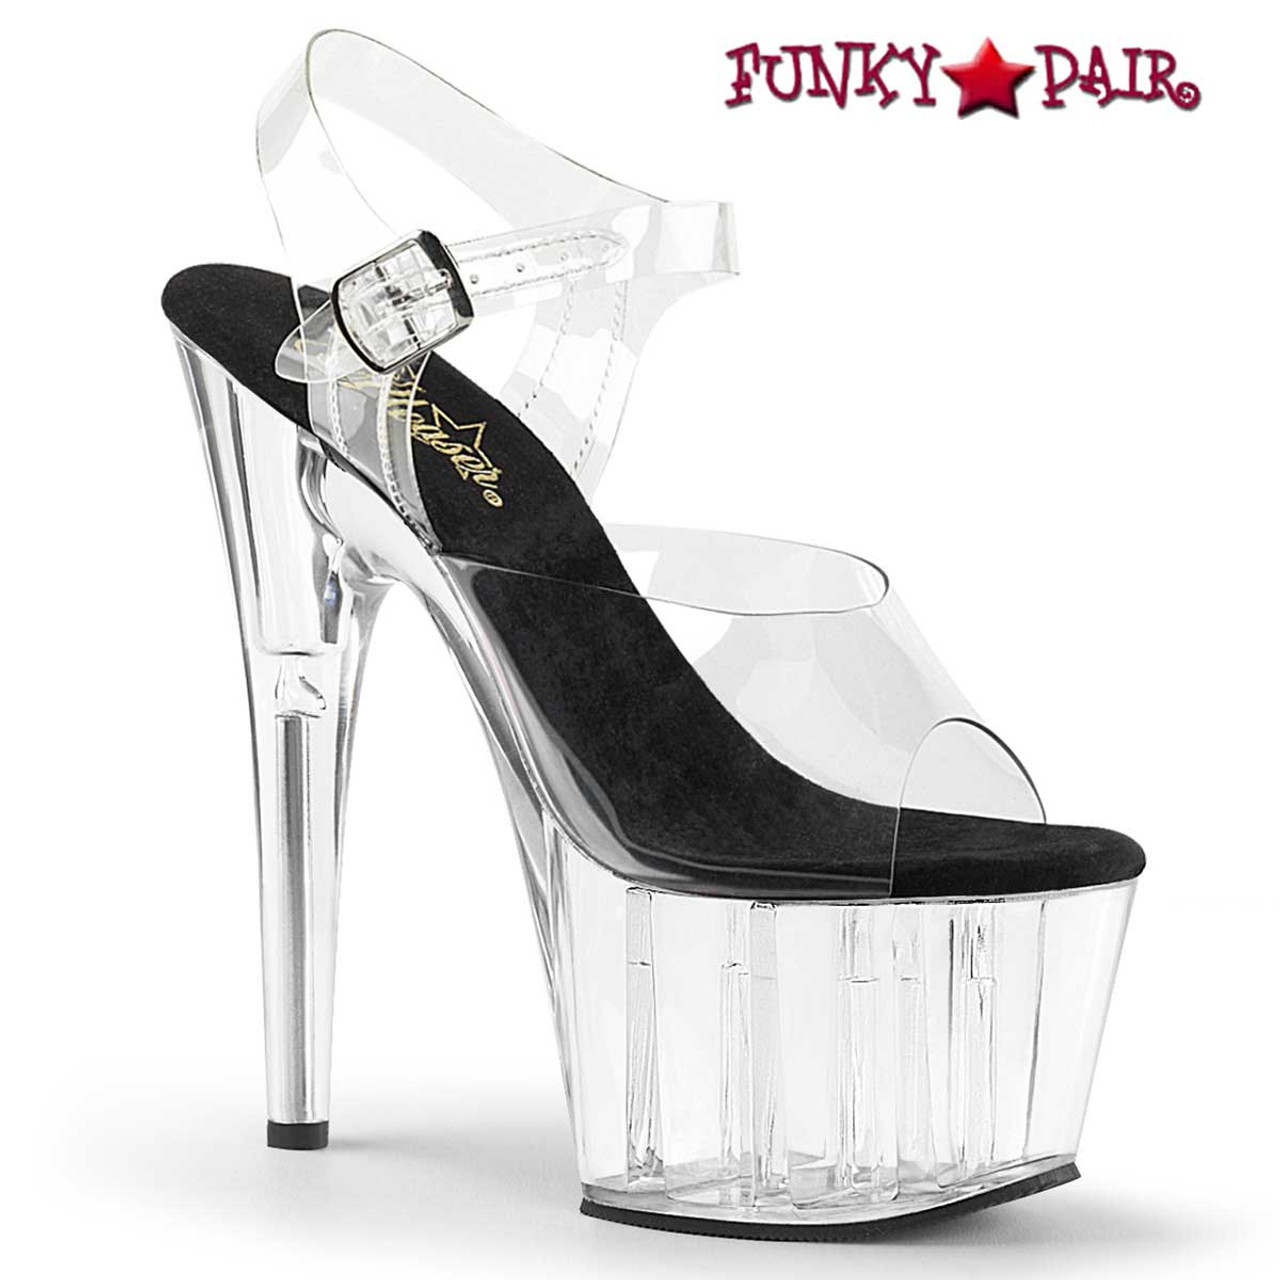 Red Chrome Stiletto High Heel Ankle Strap Stripper Dance Platform Women Shoes